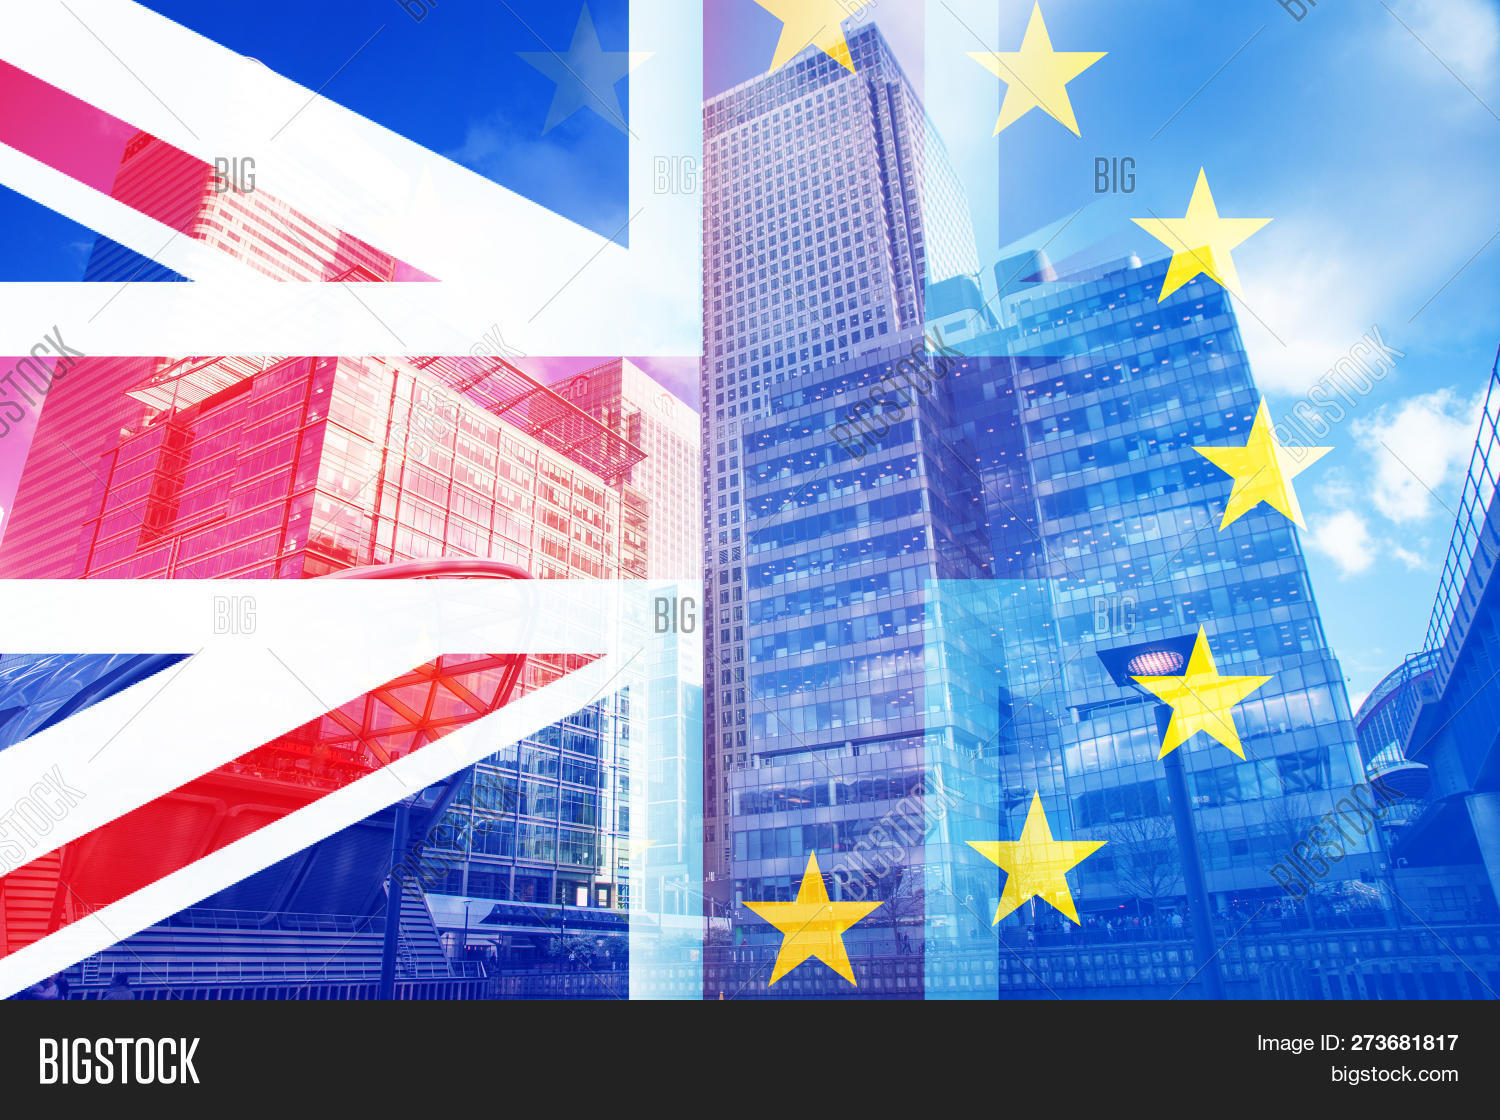 agreement,background,blue,brexit,britain,british,broken,business,canary wharf skyscrapers,concept,country,crisis,decision,economy,england,eu,euro,europe,european,exit,finance,financial,flag,future,government,great,hard brexit,kingdom,leave,london,national,no,no deal,parliament,political,politics,poll,referendum,remain,result,separation,soft brexit,symbol,uk,union,union jack,united,vote,voting,withdrawal